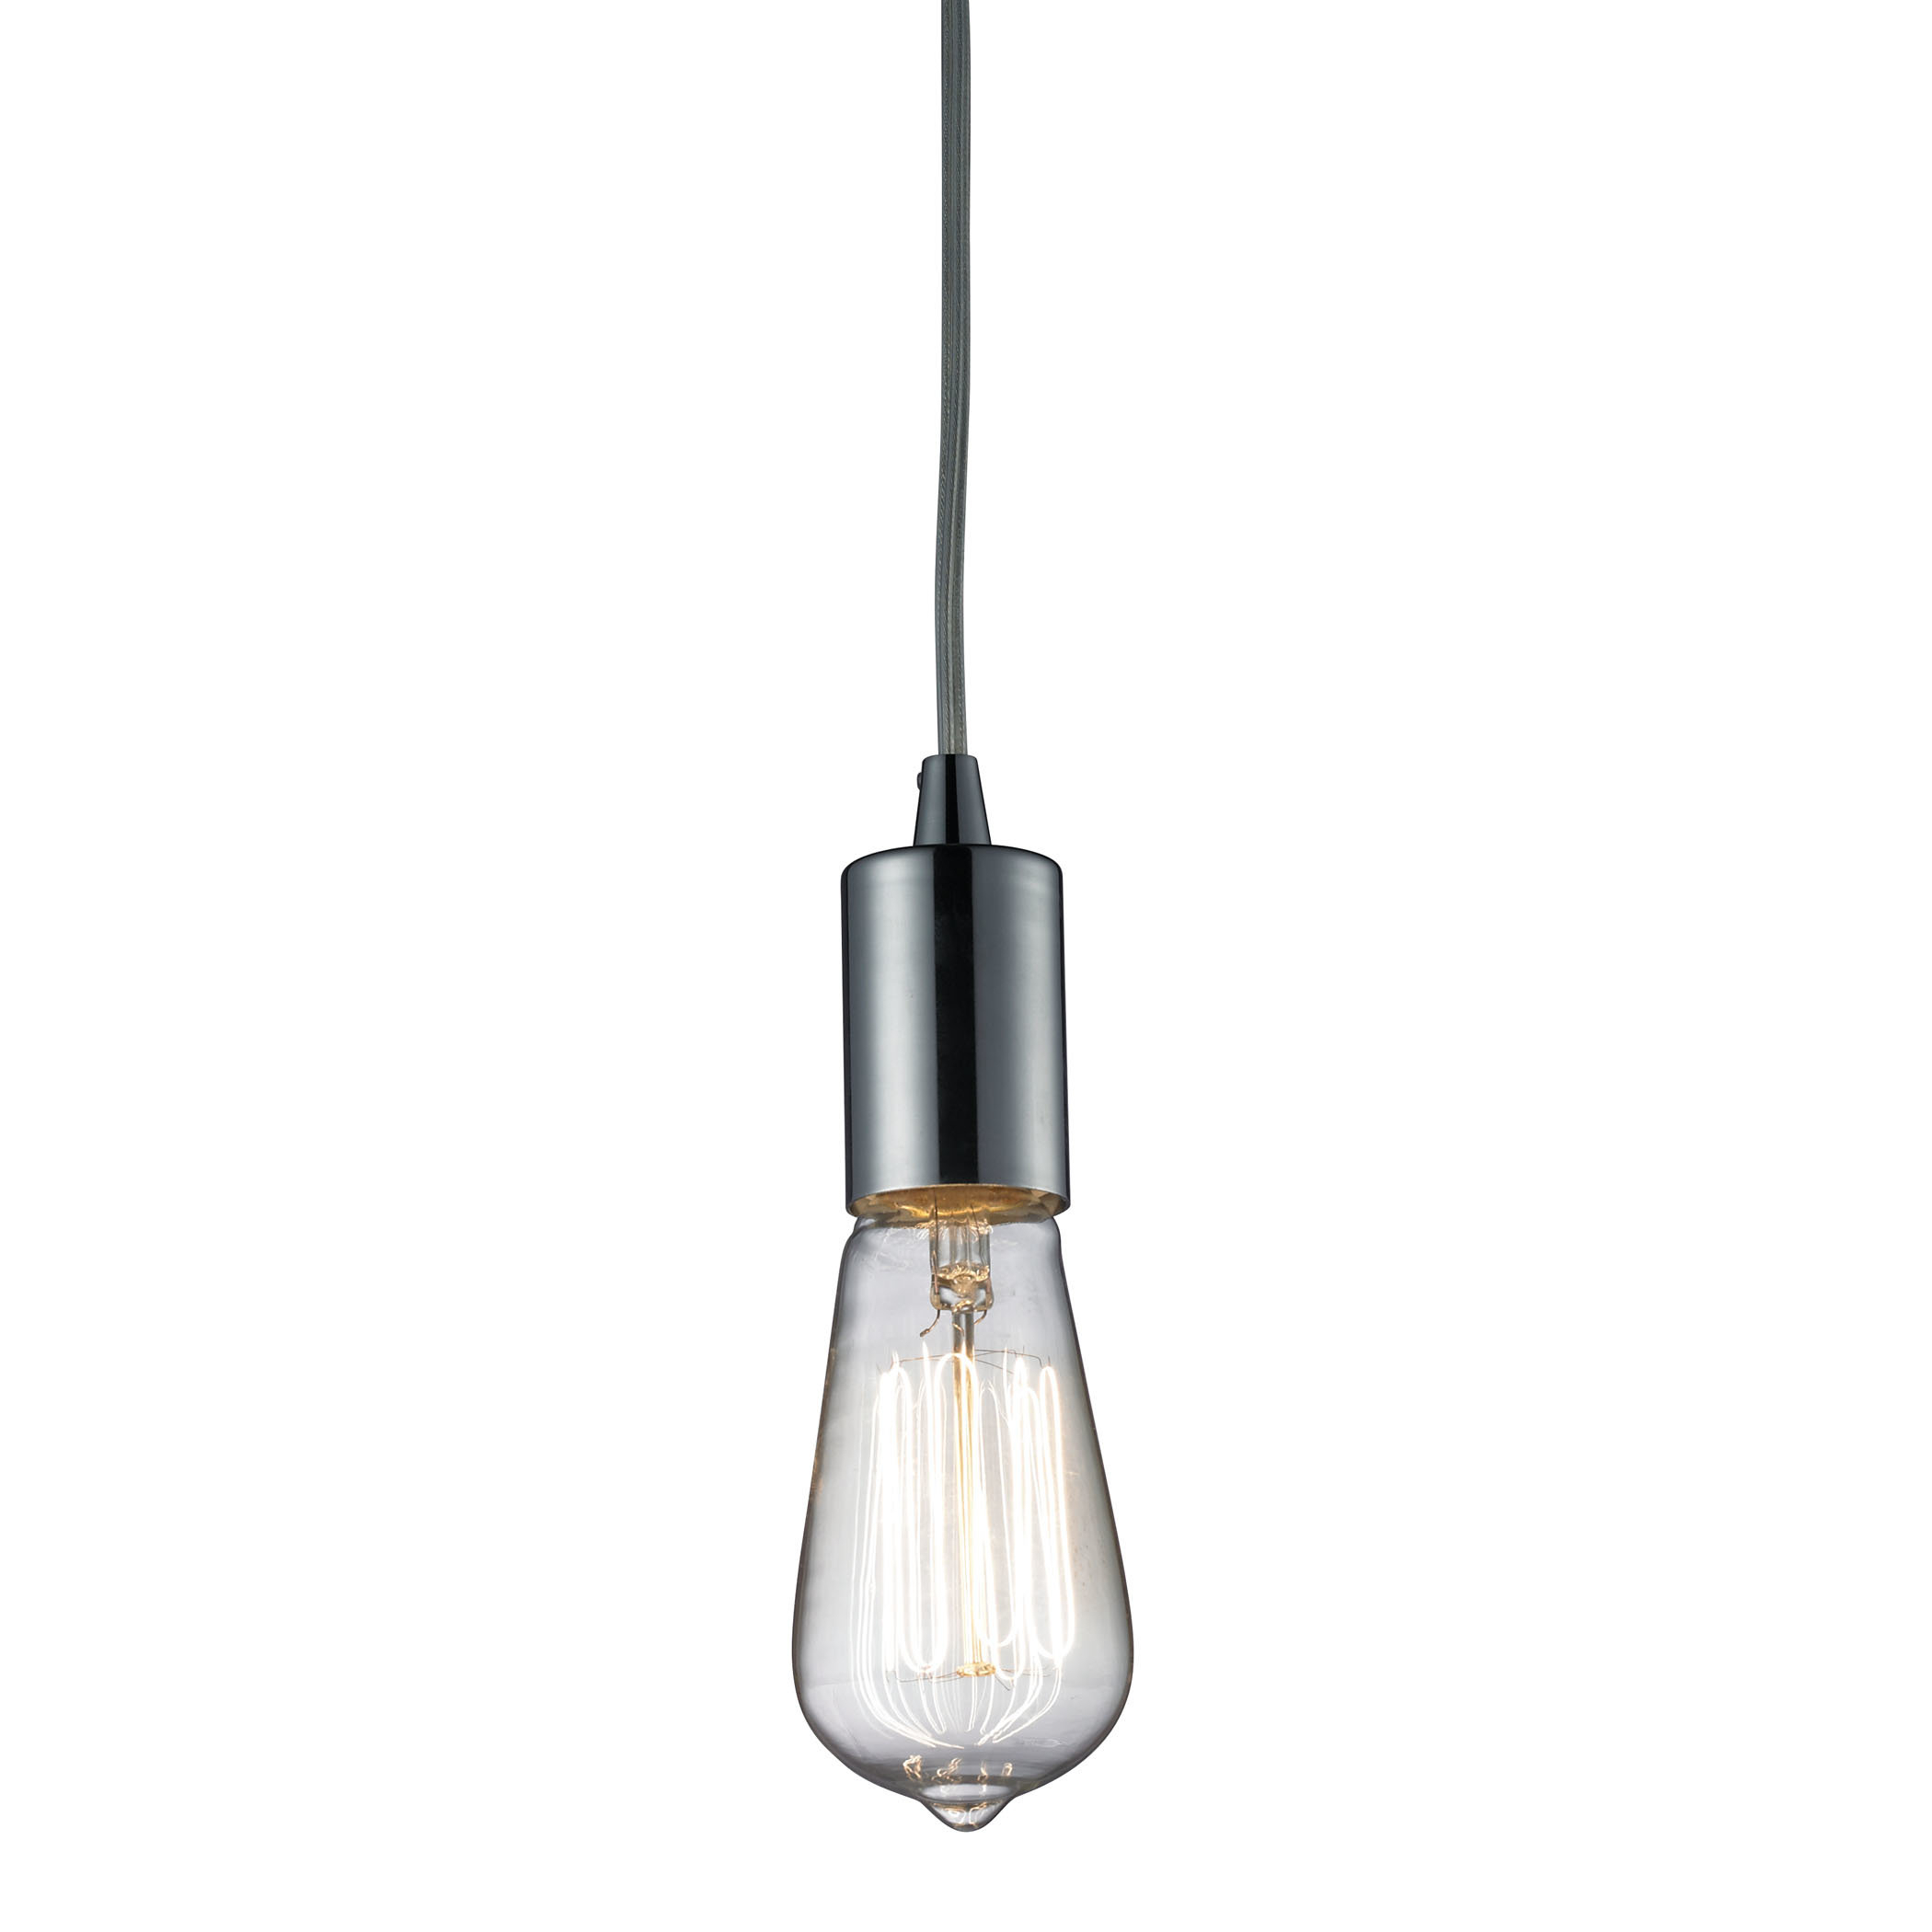 Topete 1 Light Single Bulb Pendant Within Bryker 1 Light Single Bulb Pendants (View 6 of 30)